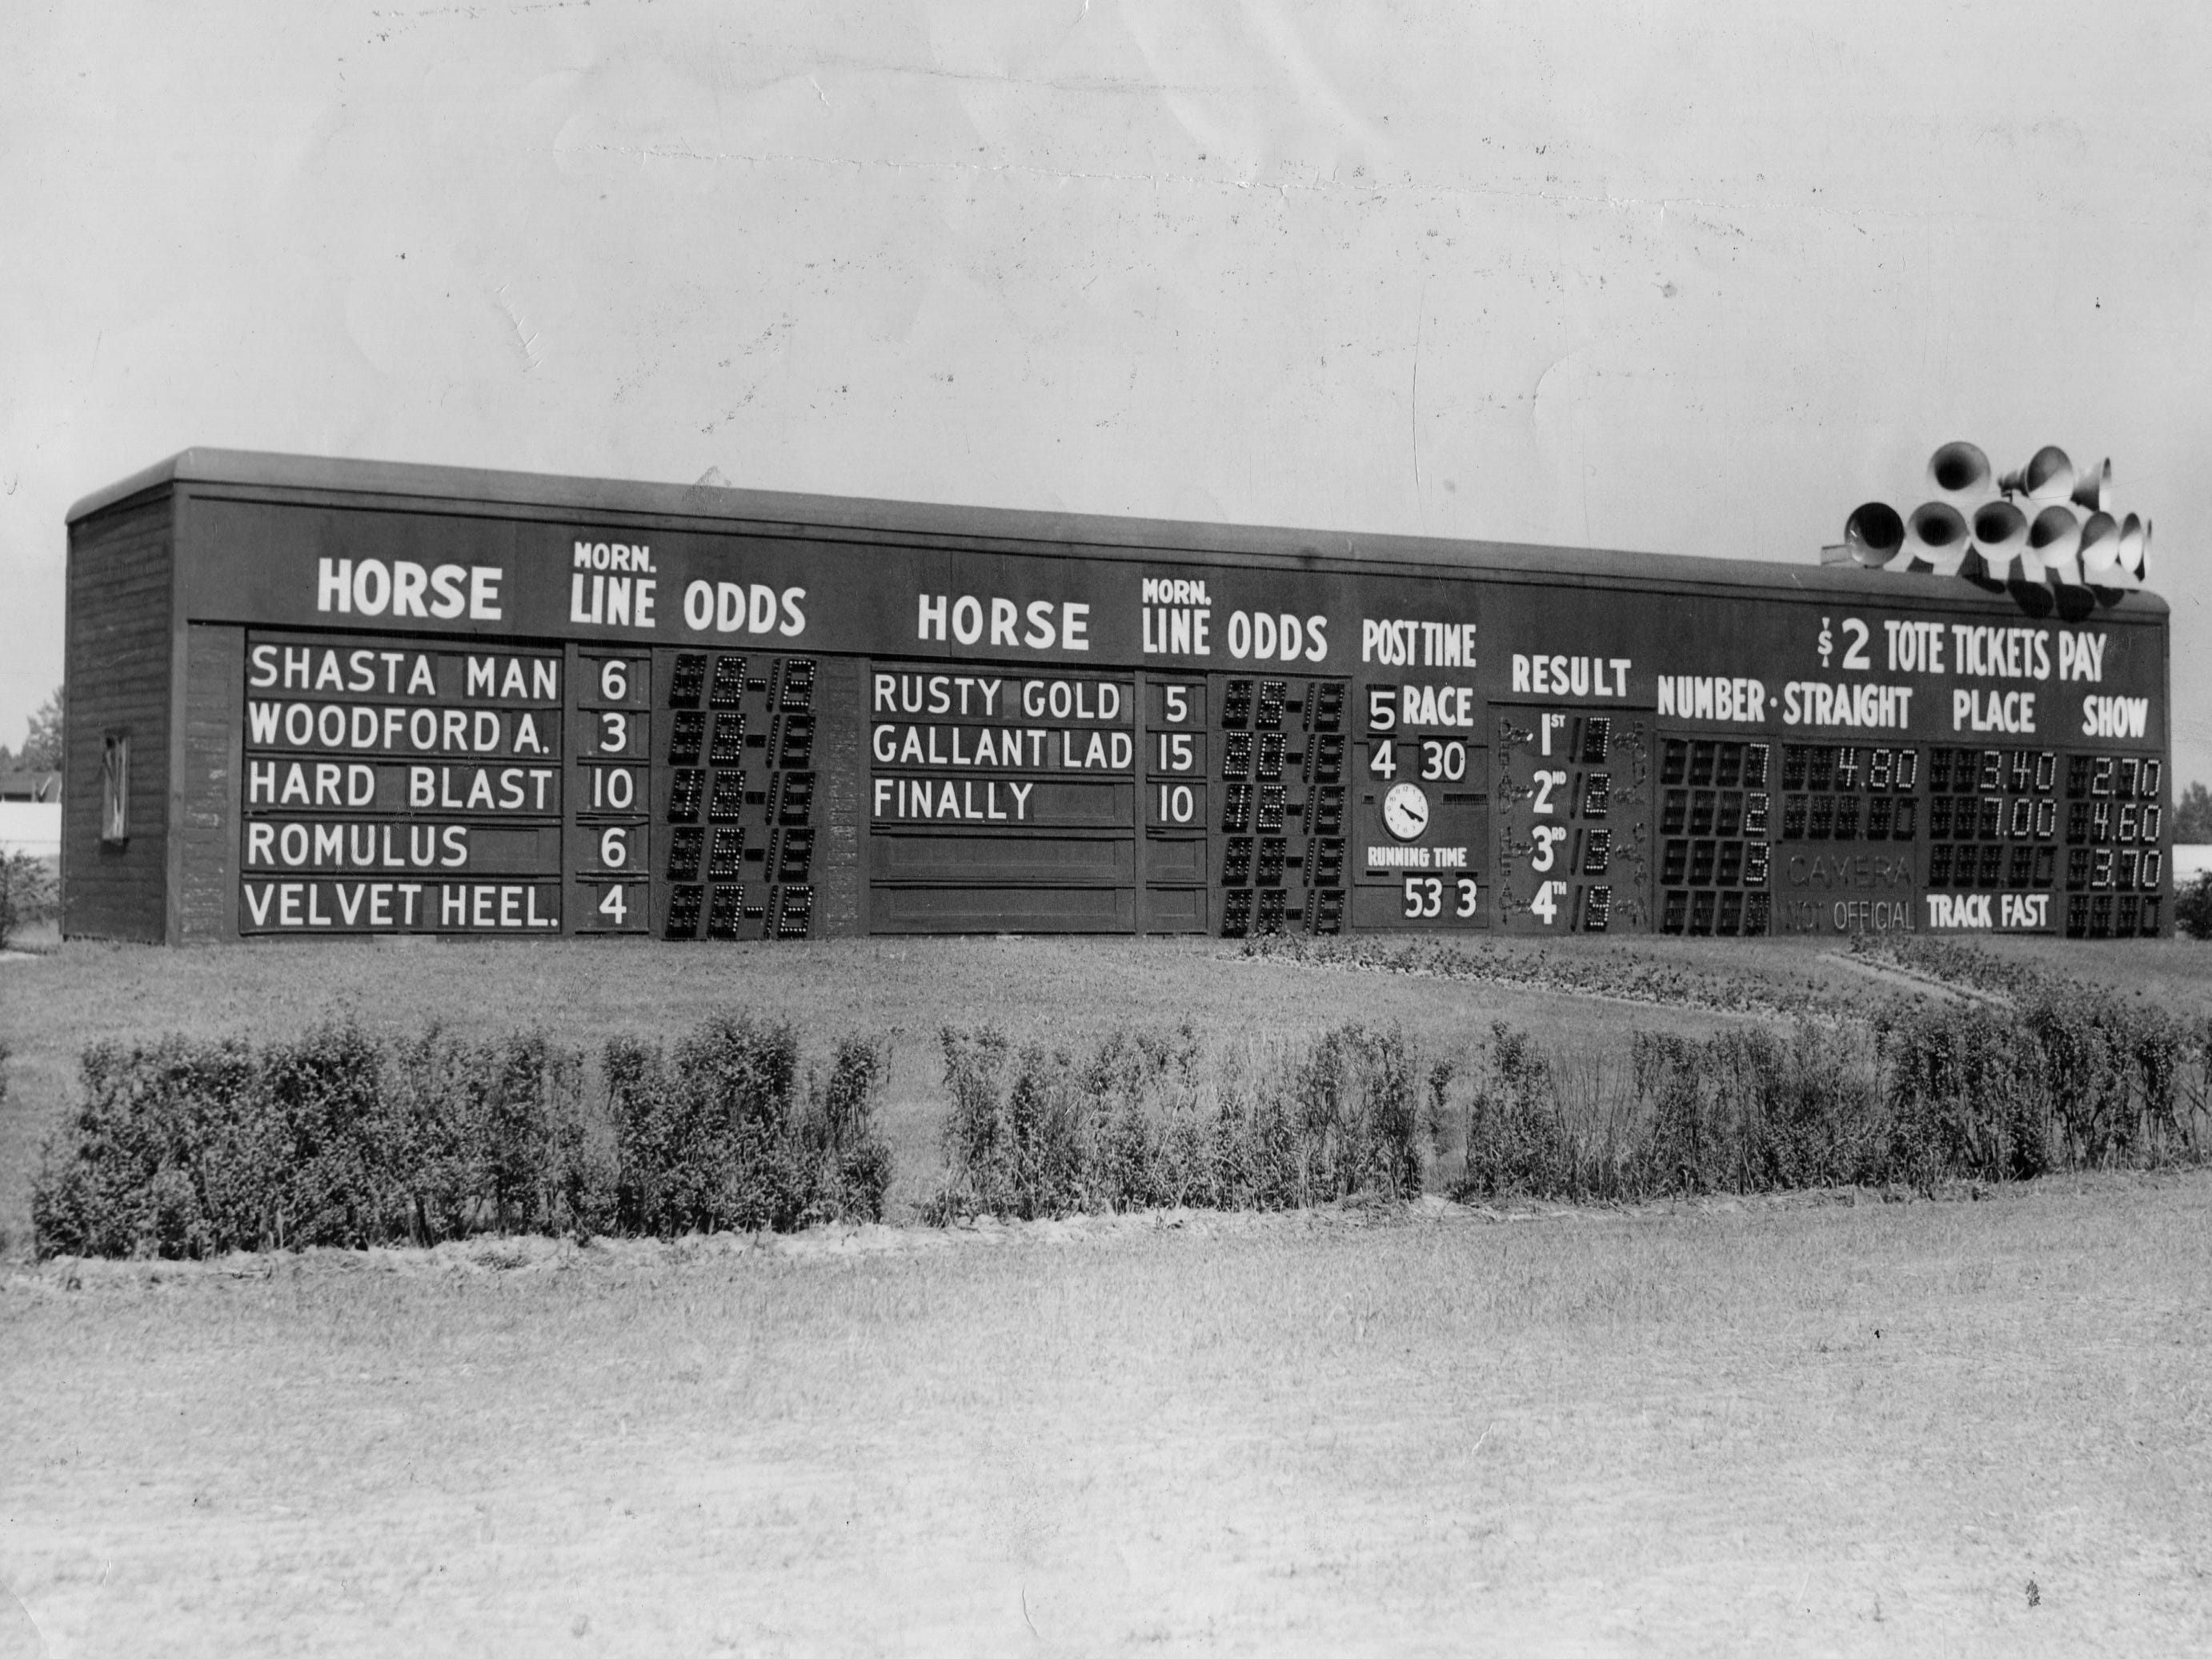 Horses and their morning lines are posted by hand on the scoreboard at this Detroit-area race track in 1944.  The track was not identified, but Northville Race Track had been operating since the turn of the 20th century, and its successor Northville Downs was constructed in 1944.